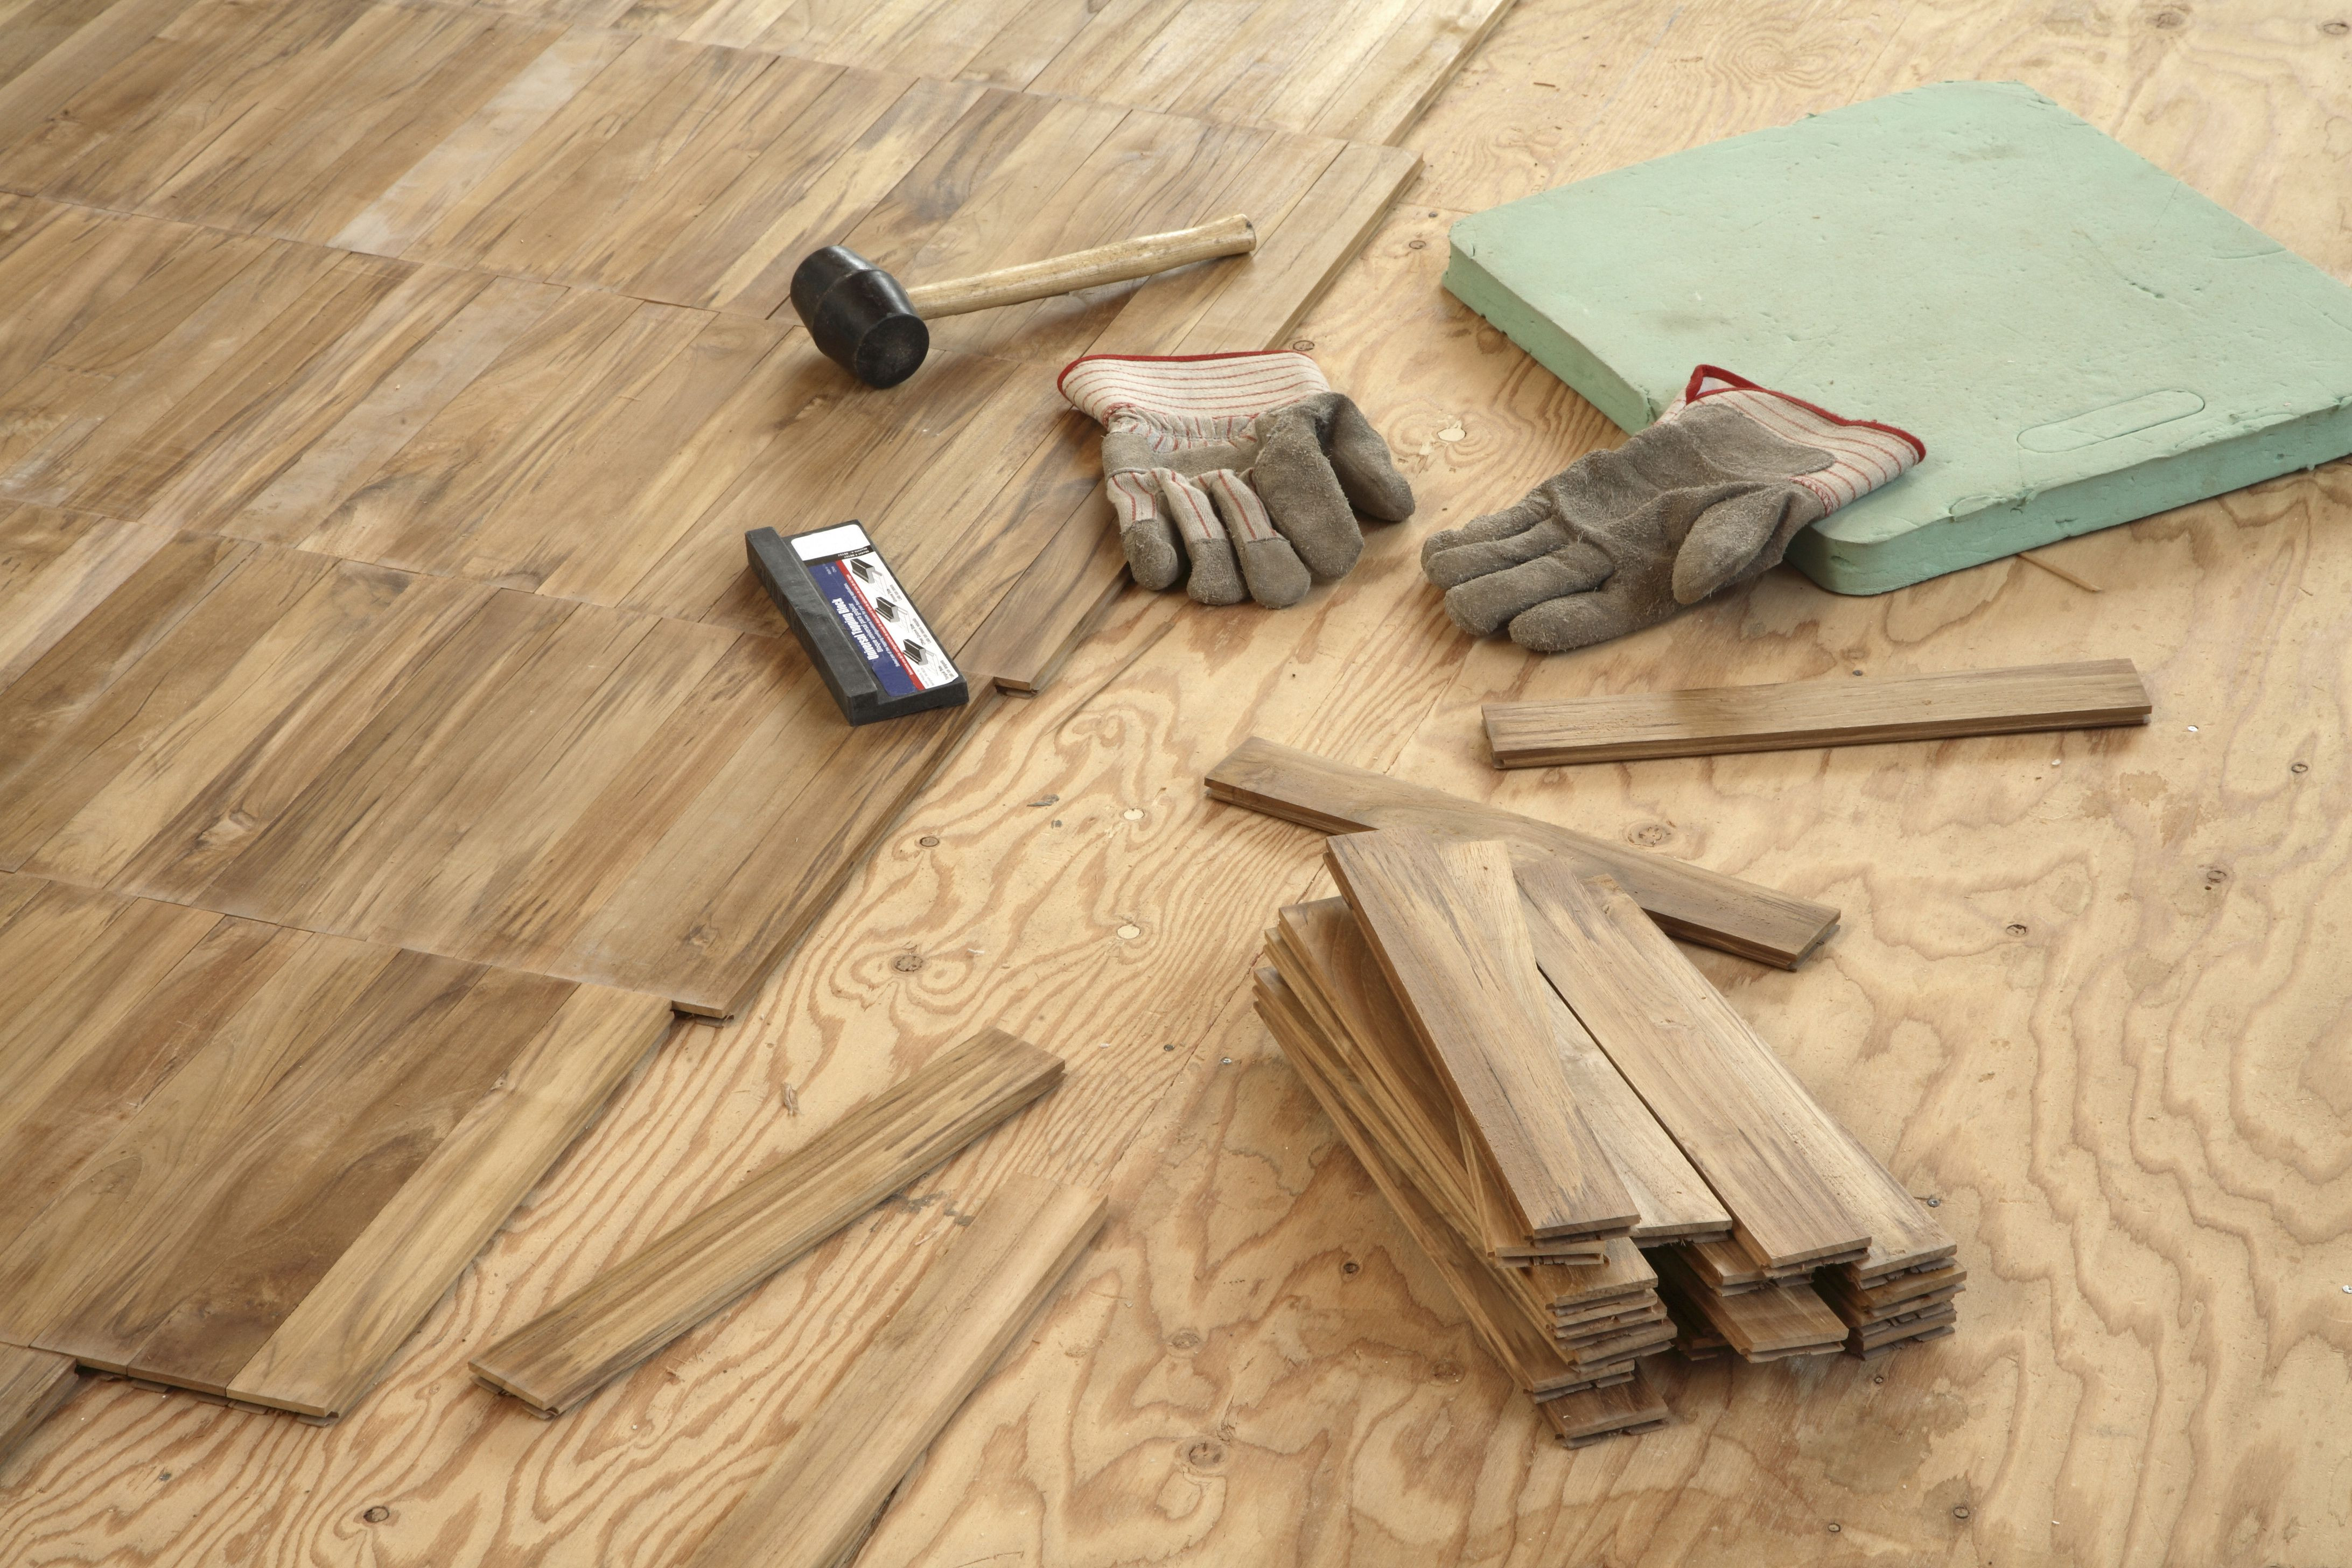 hardwood floor wax home depot of plywood underlayment pros and cons types and brands for plywoodunderlaymentunderwoodflooring 5ac24fbcae9ab8003781af25